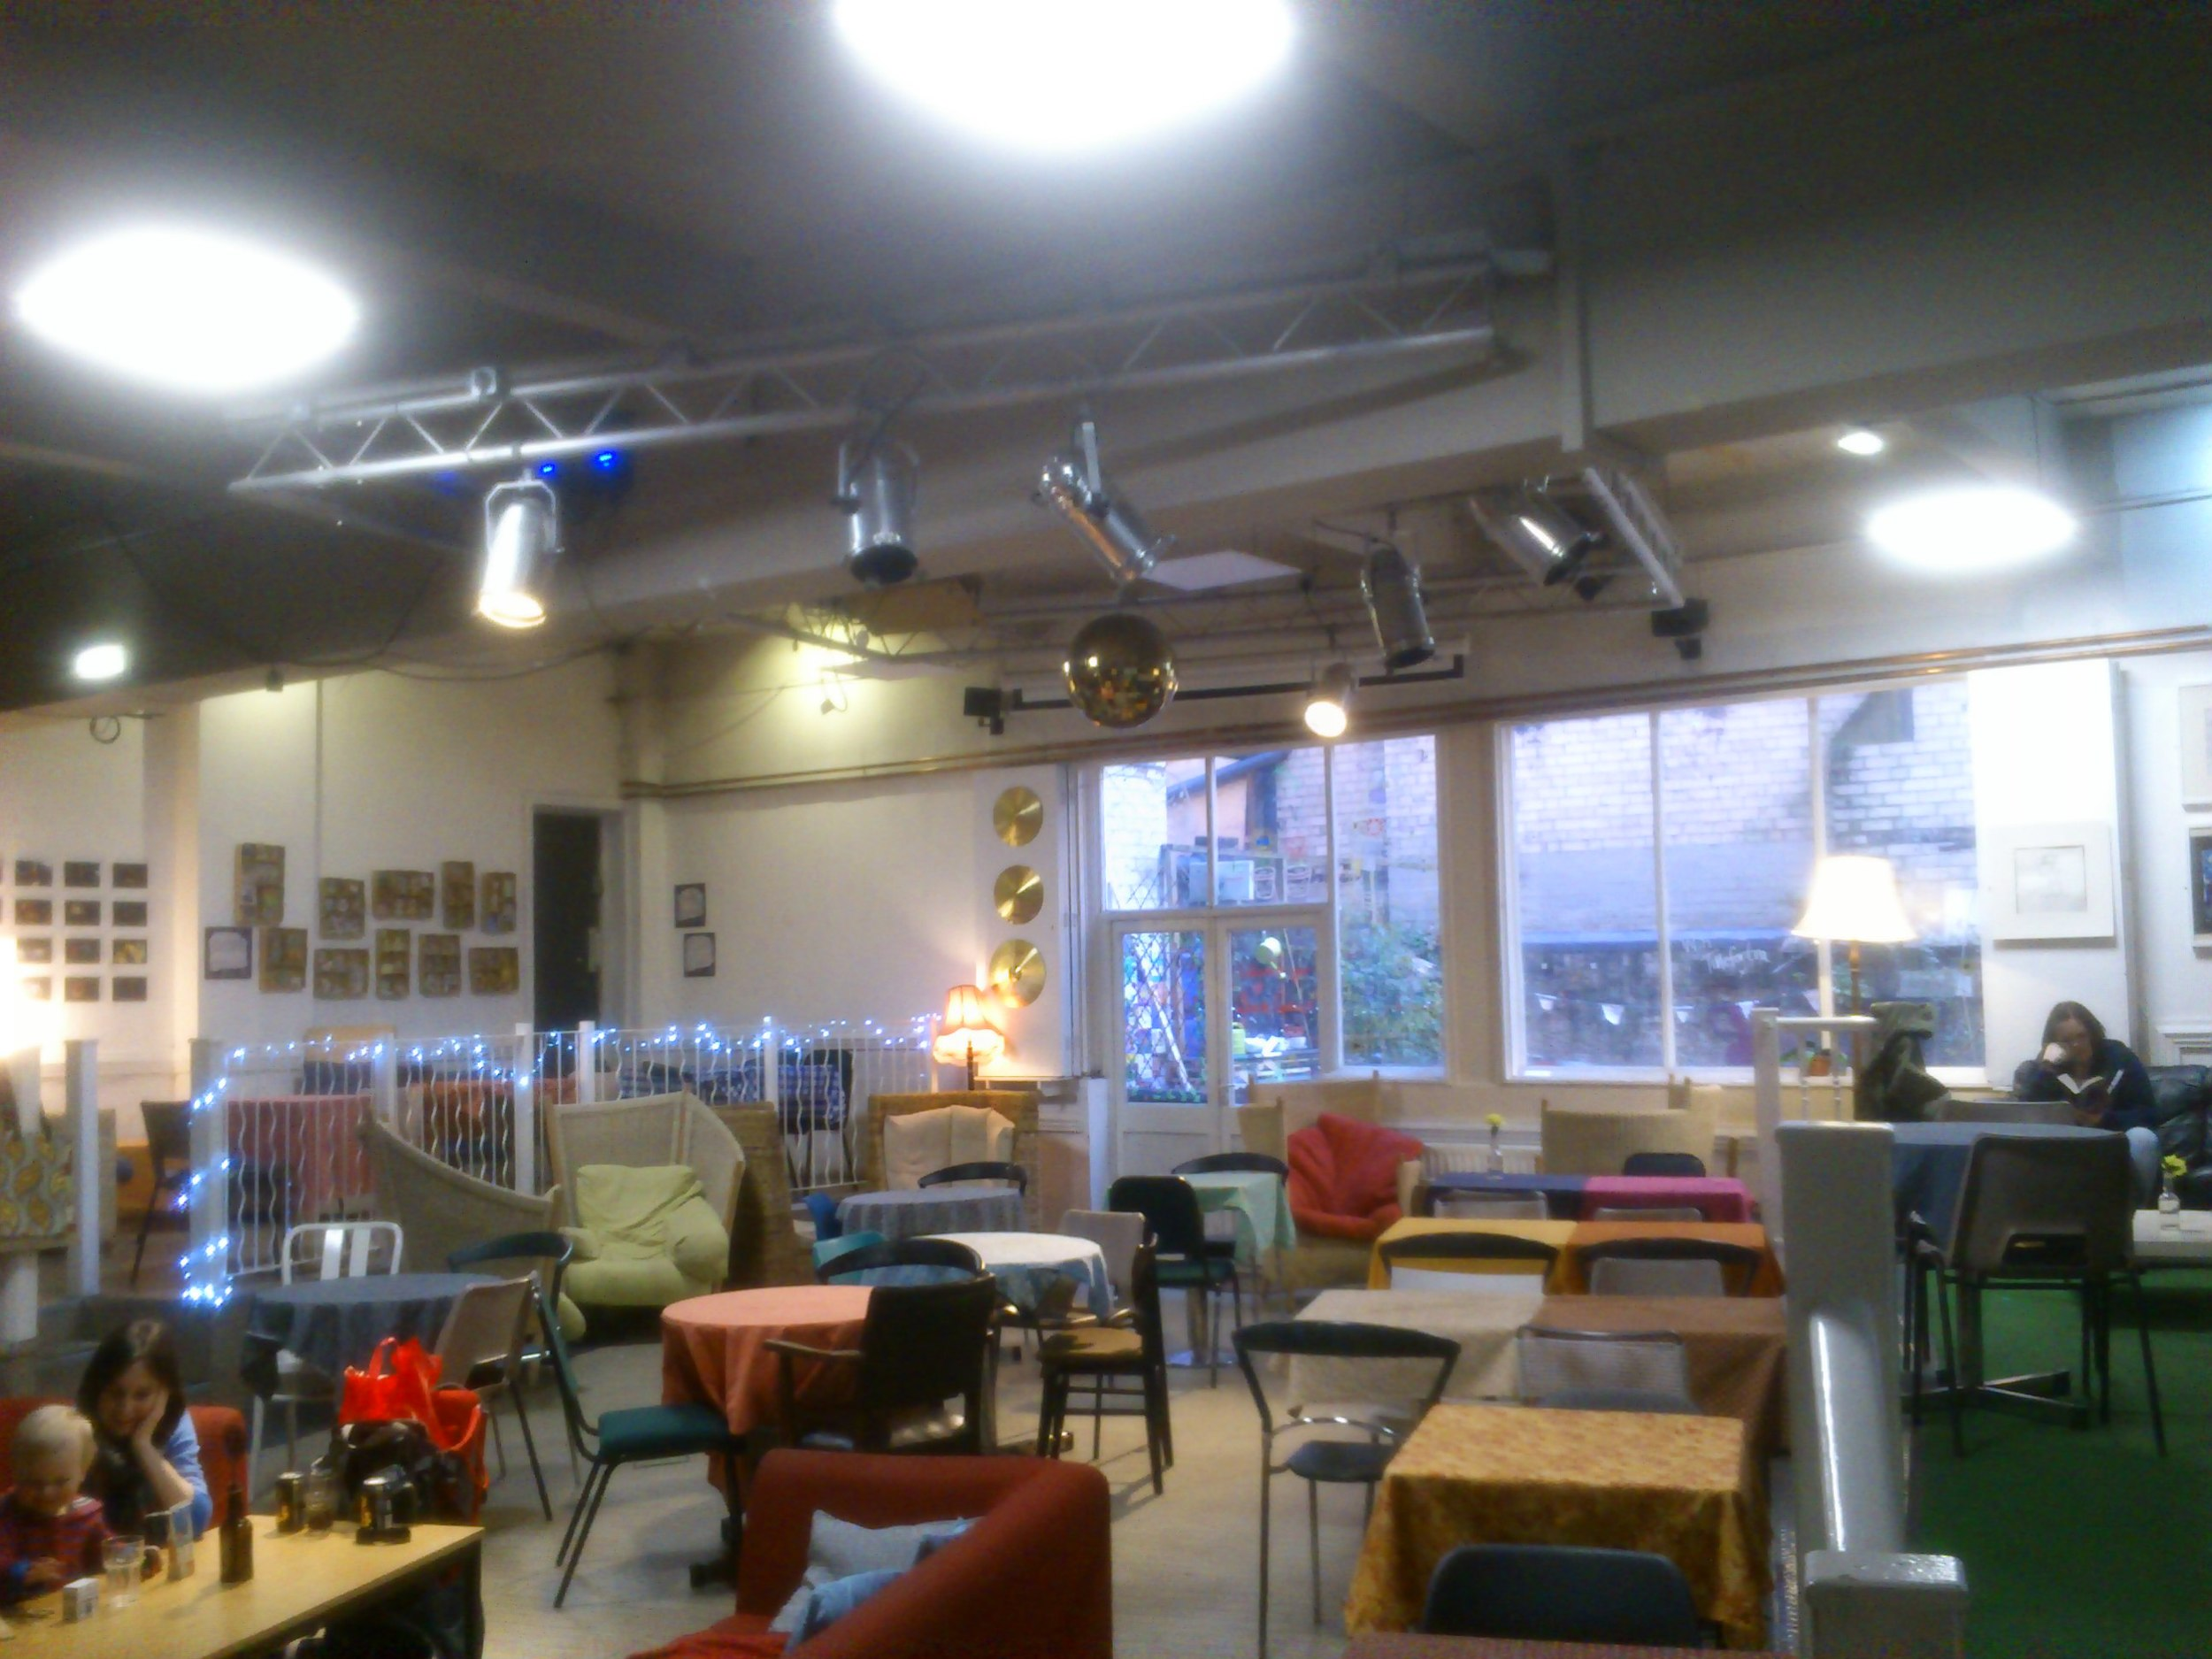 Nexus Art Cafe, a wonderful little place which shows art as well as good music. They have a great ethos and very relaxed atmosphere. We obtained details from them and they agreed to let us put on a show if we wanted. It is free too so no cost involved. All very good!